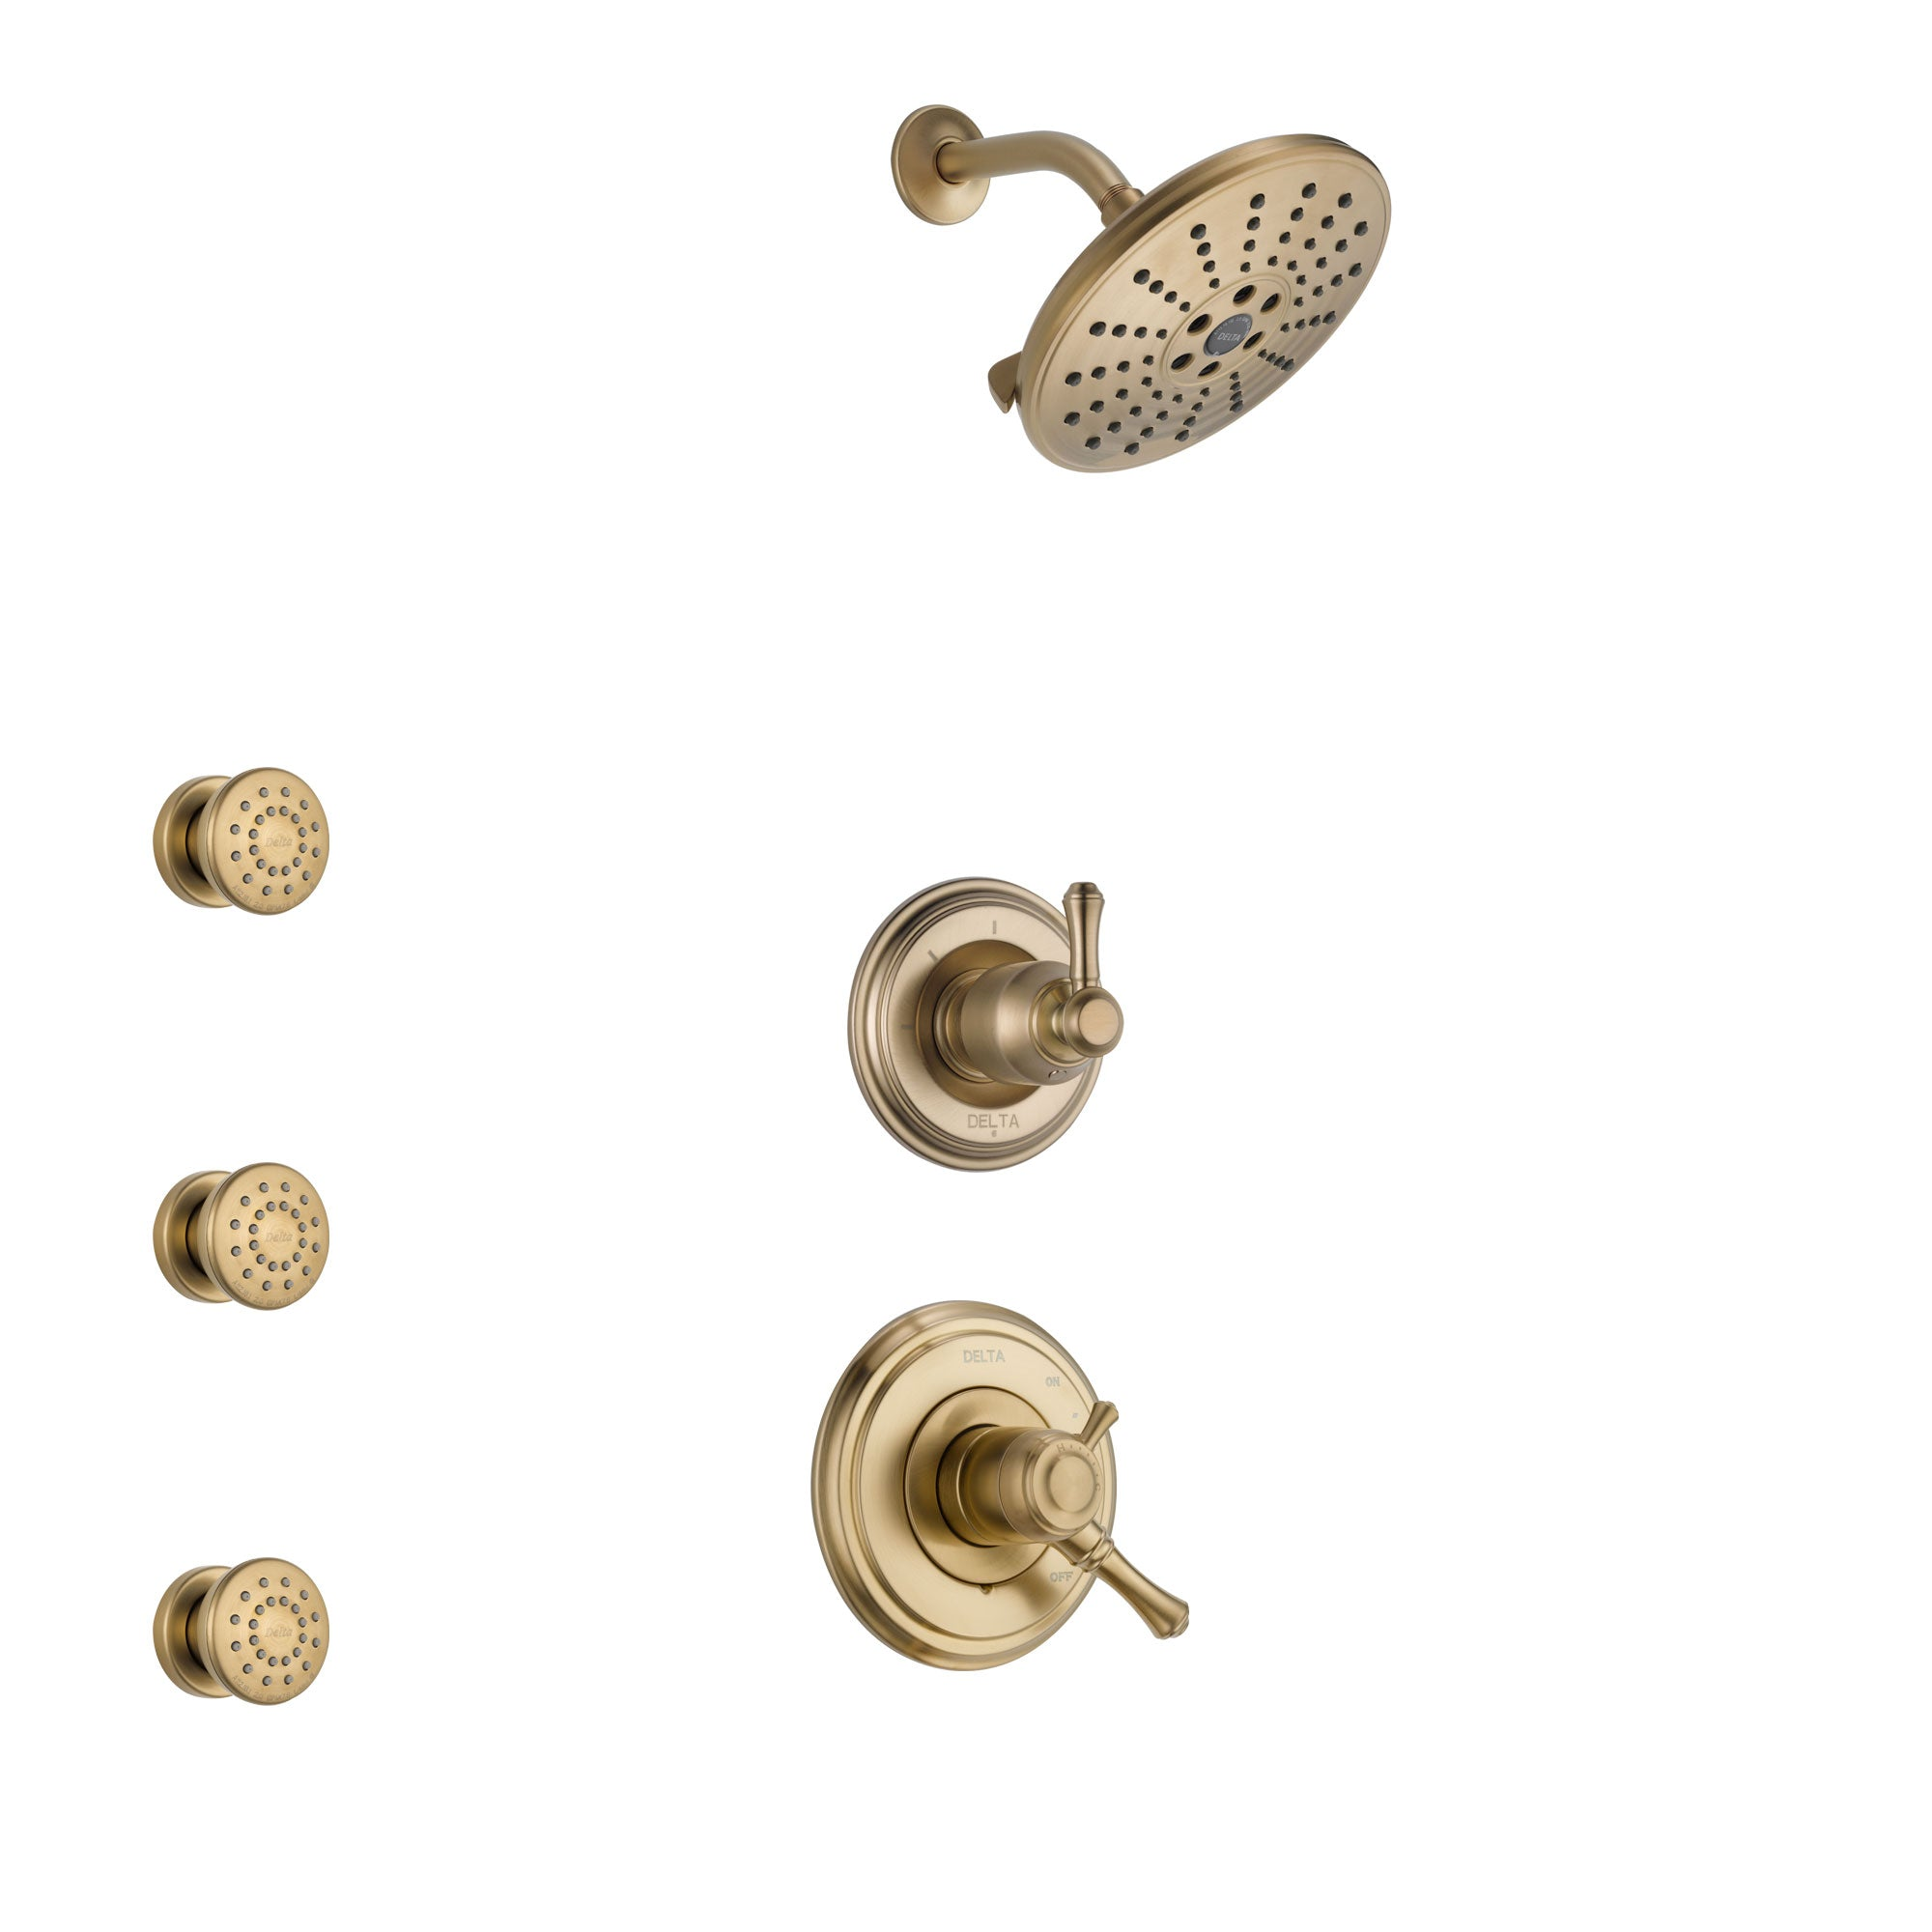 Delta Cassidy Champagne Bronze Finish Shower System with Dual Control Handle, 3-Setting Diverter, Showerhead, and 3 Body Sprays SS1797CZ6